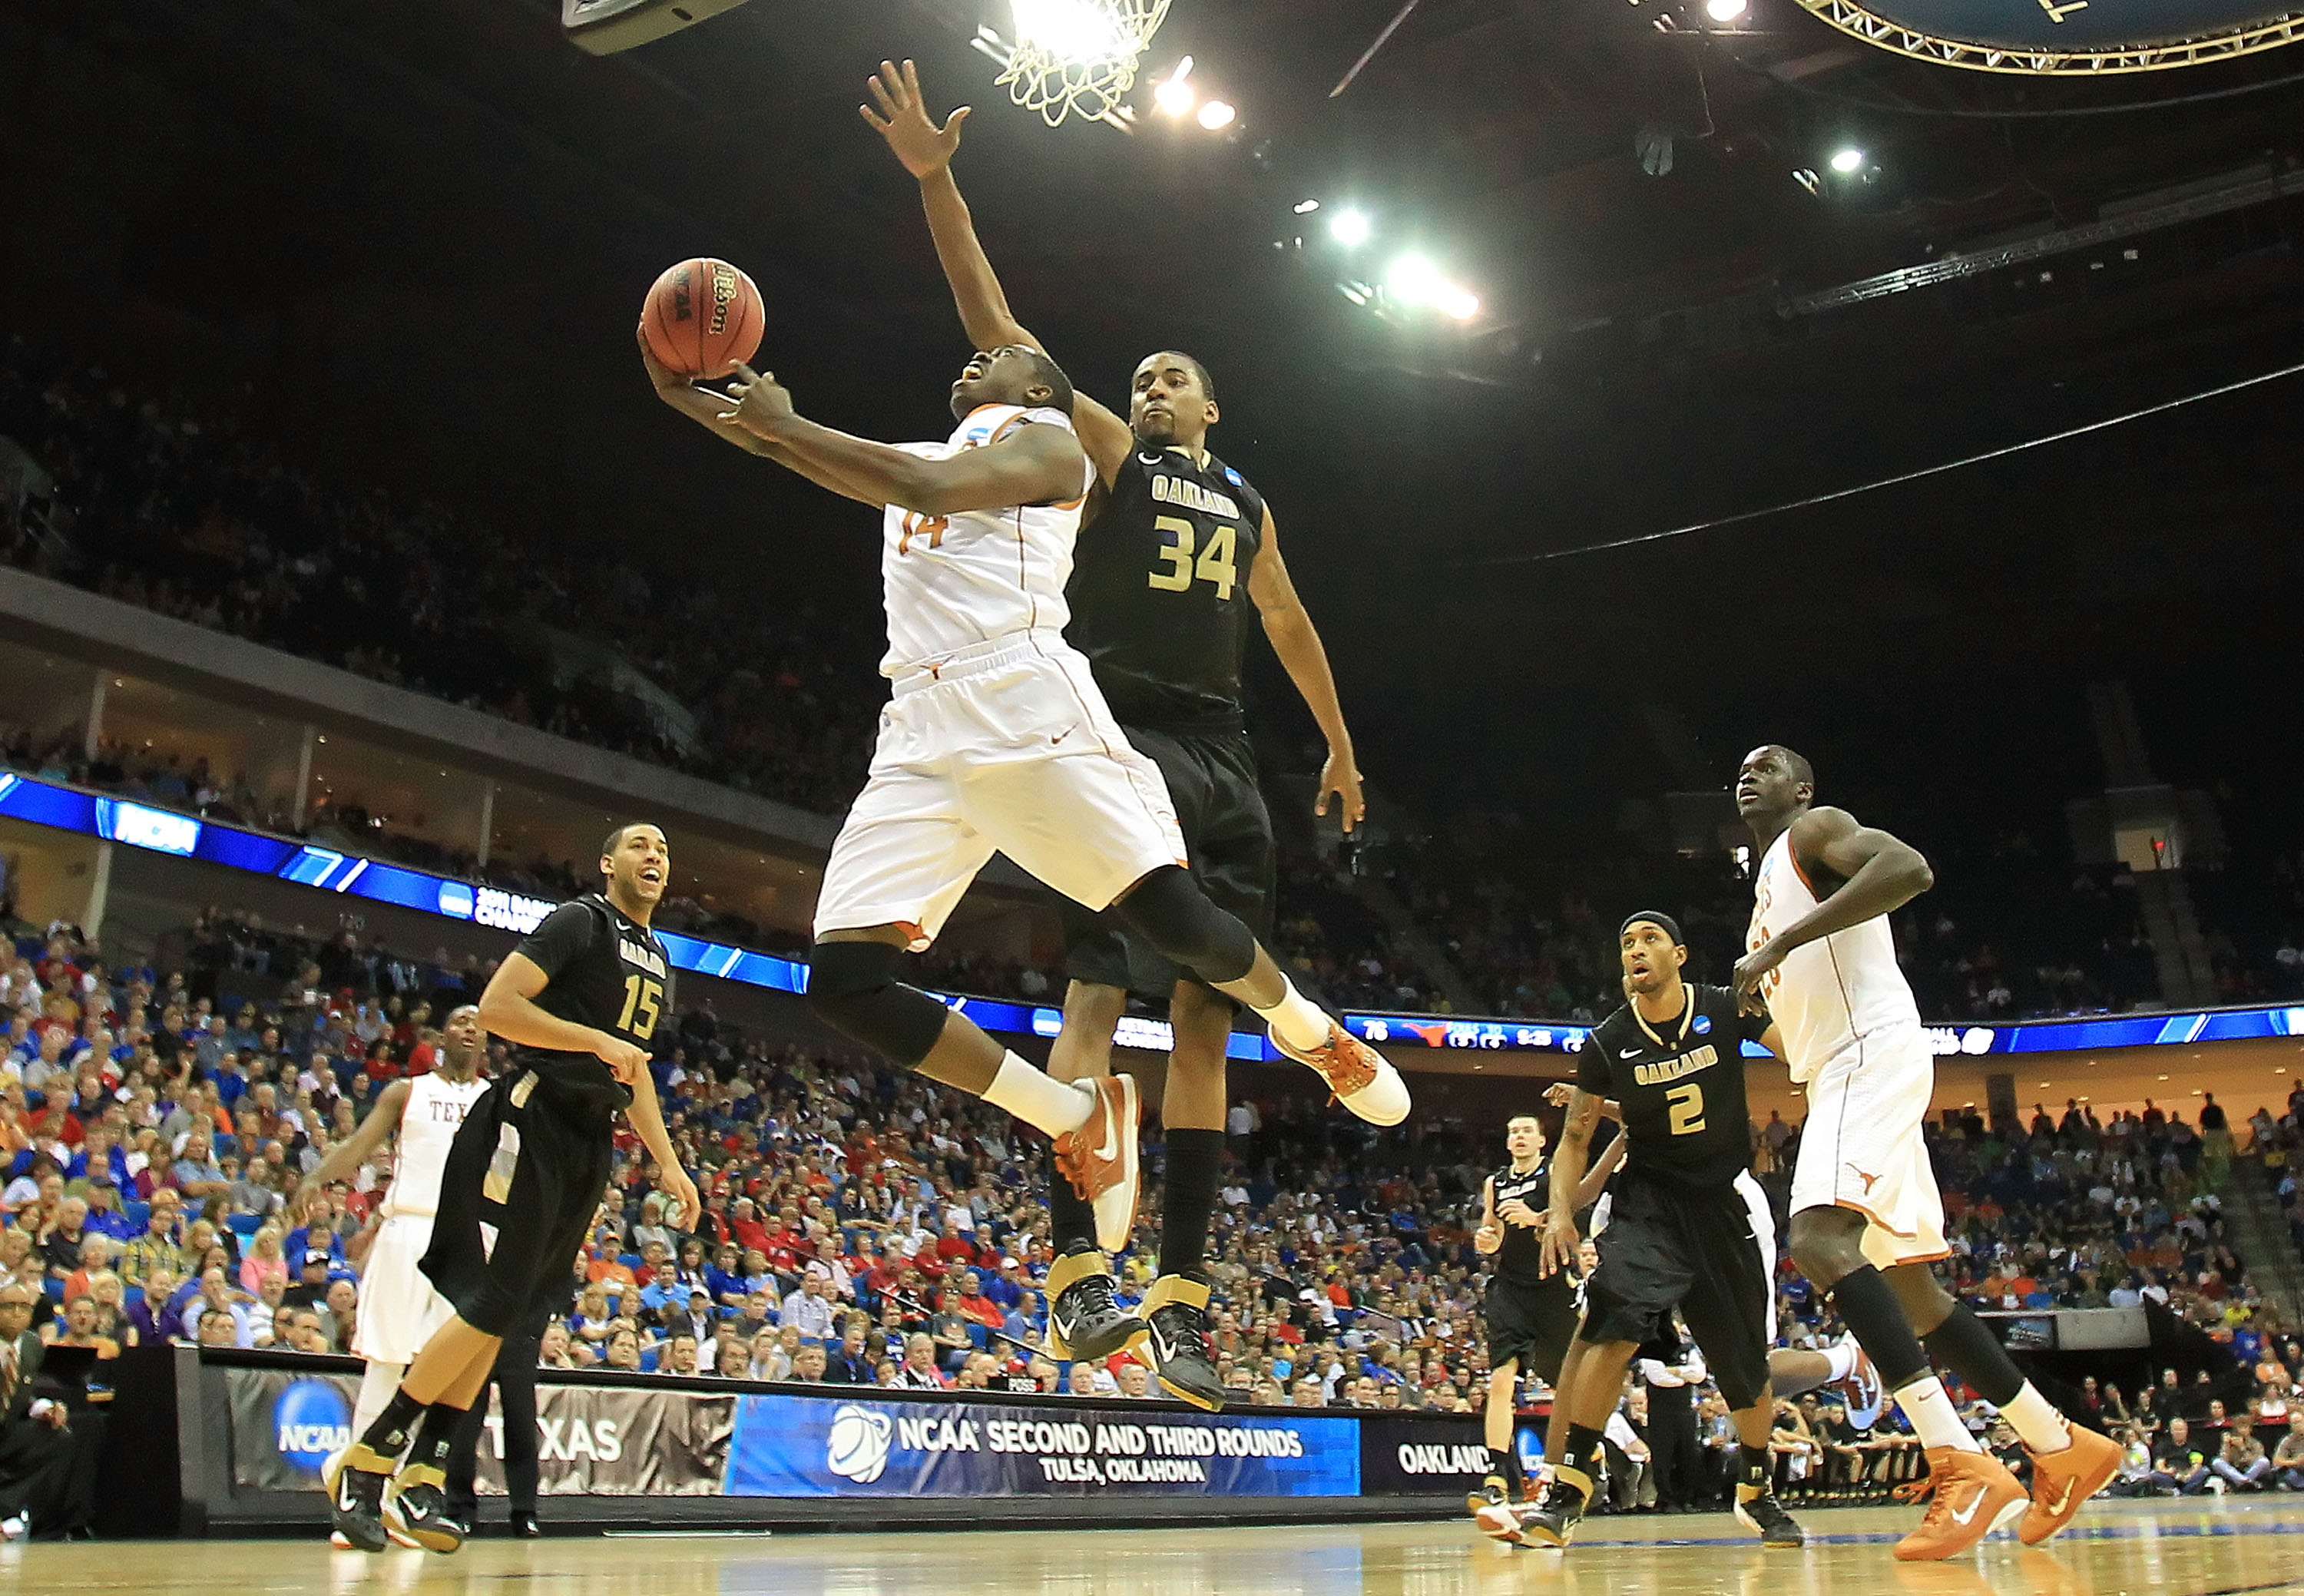 TULSA, OK - MARCH 18:  J'Covan Brown #14 of the Texas Longhorns goes up for a shot against Keith Benson #34 of the Oakland Golden Grizzlies during the second round of the 2011 NCAA men's basketball tournament at BOK Center on March 18, 2011 in Tulsa, Okla